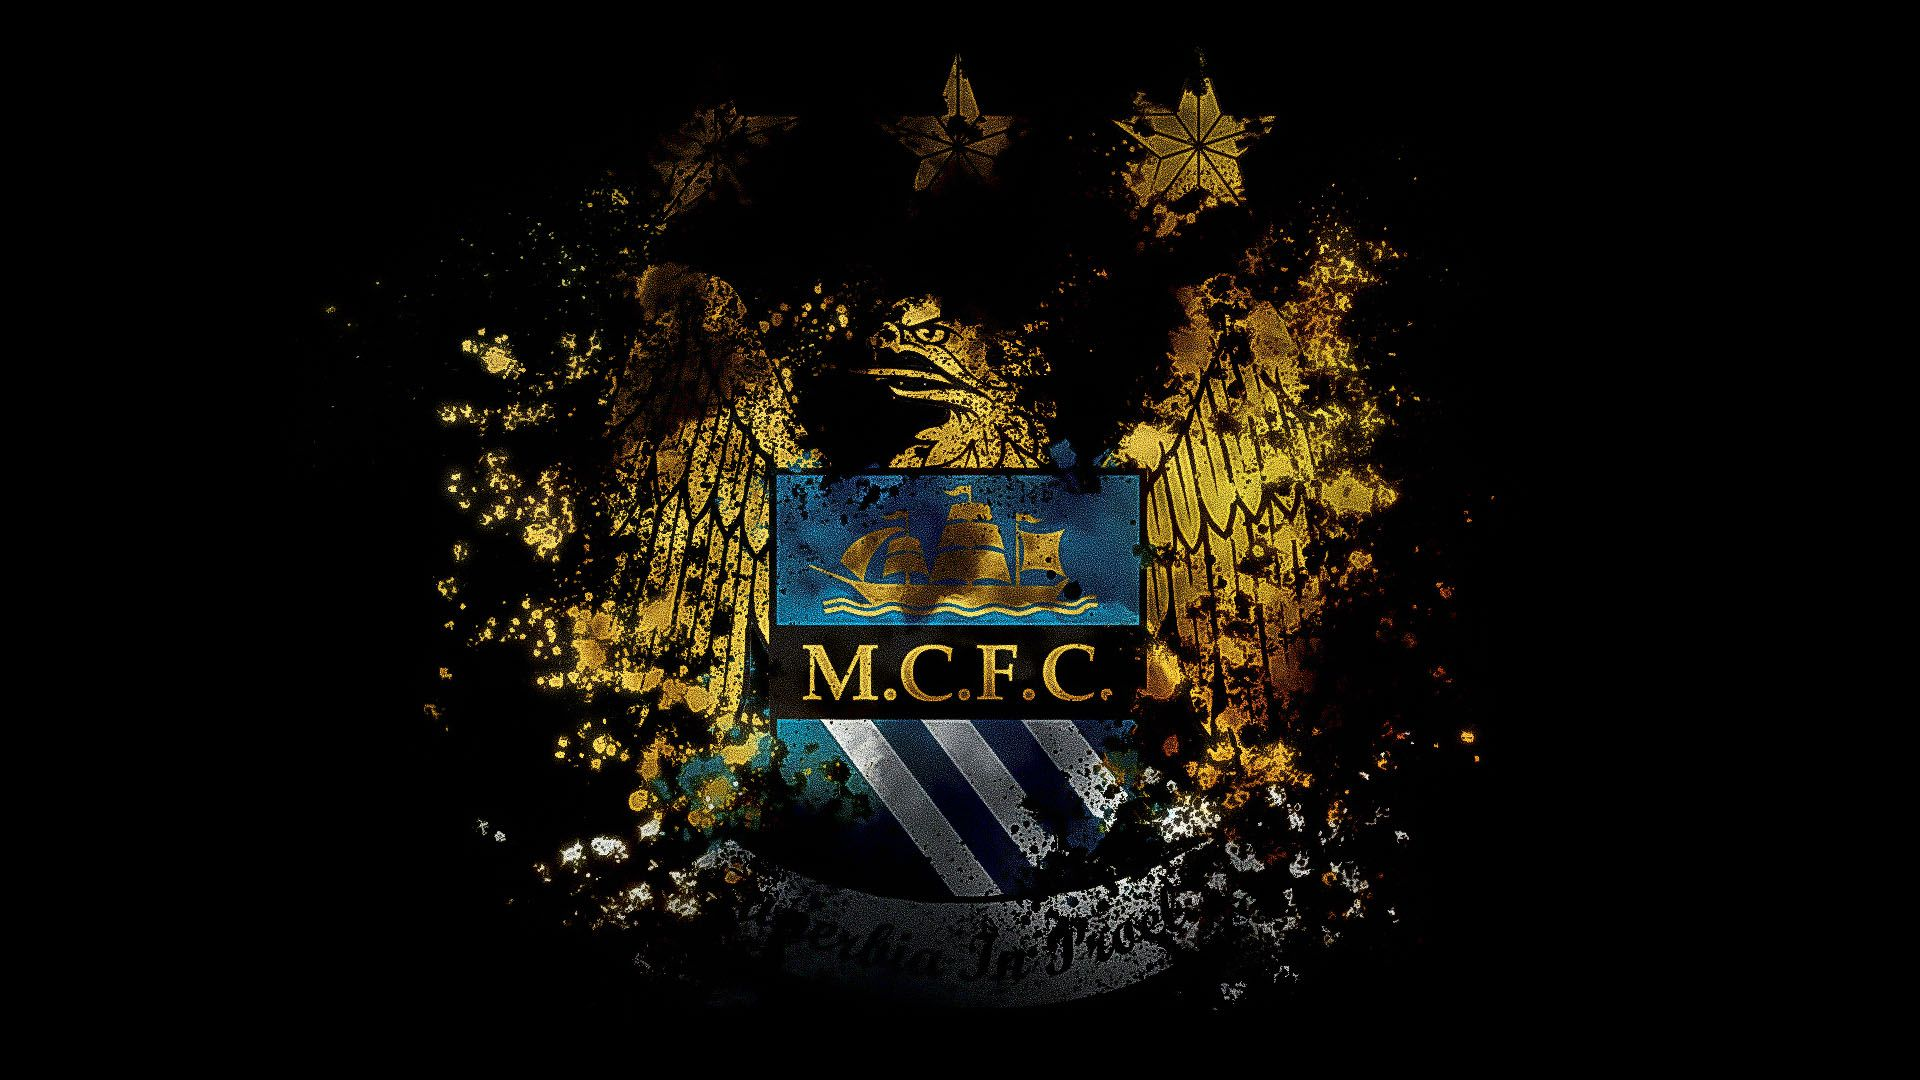 Manchester City Wallpaper Football Picture Manchester City Wallpaper City Wallpaper Manchester City